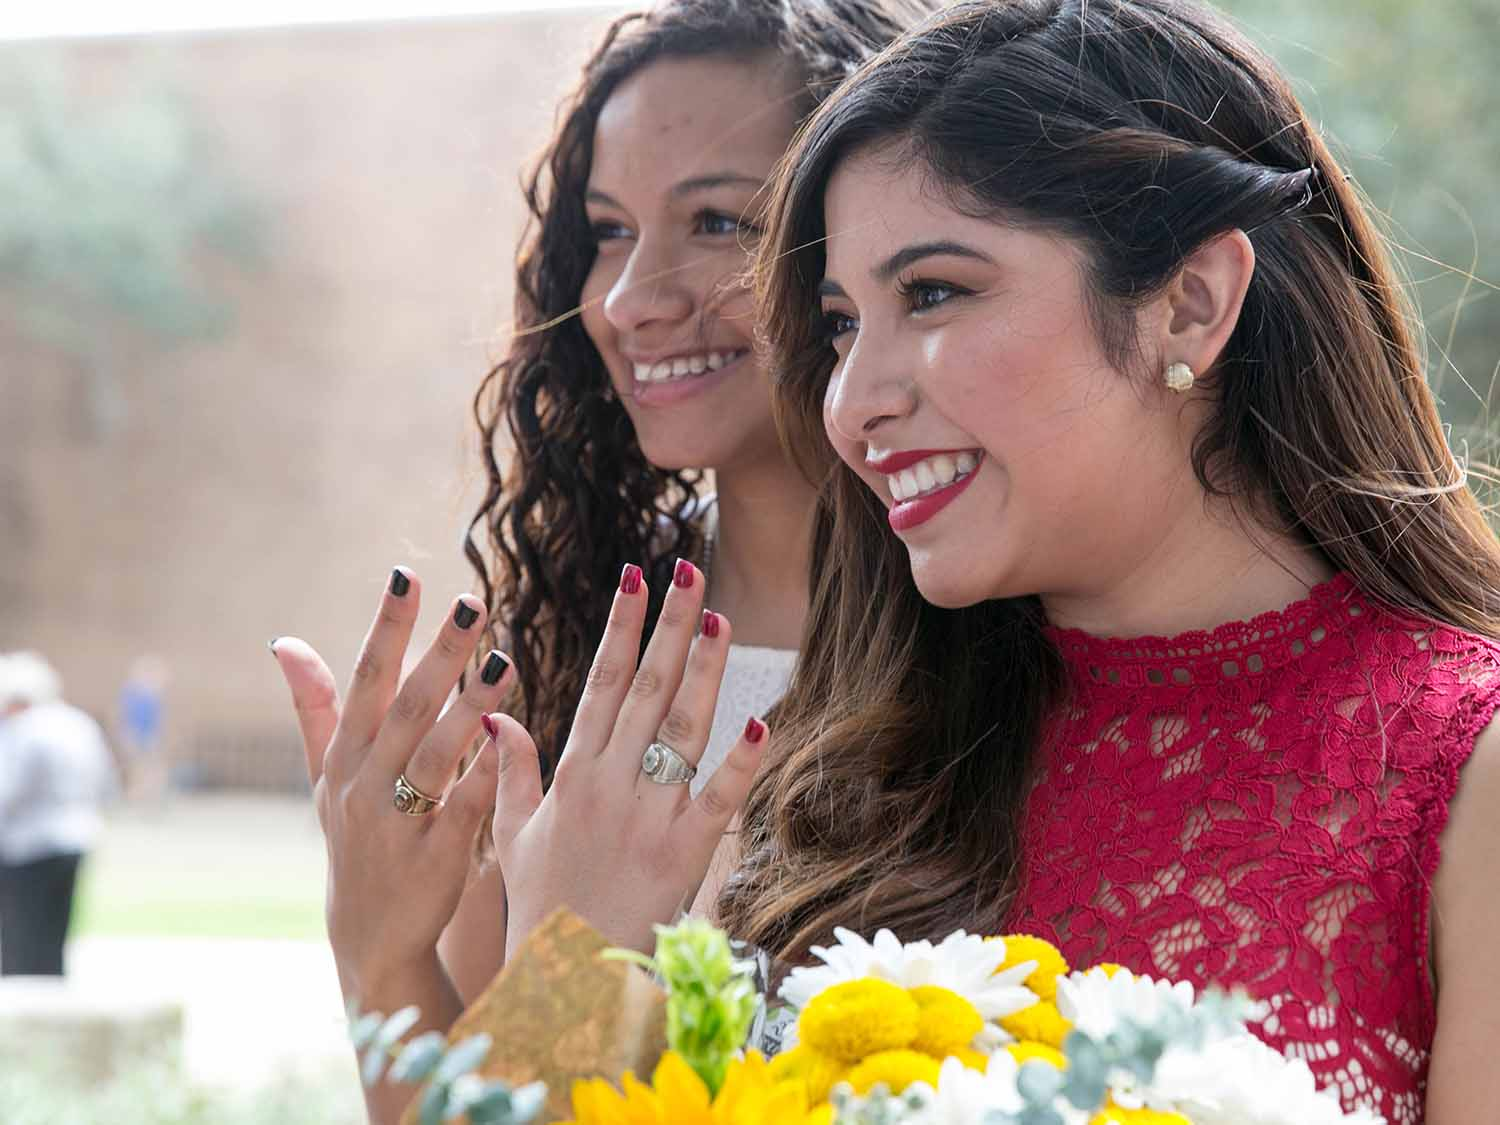 Students show their St. Edward's class rings at ring ceremony